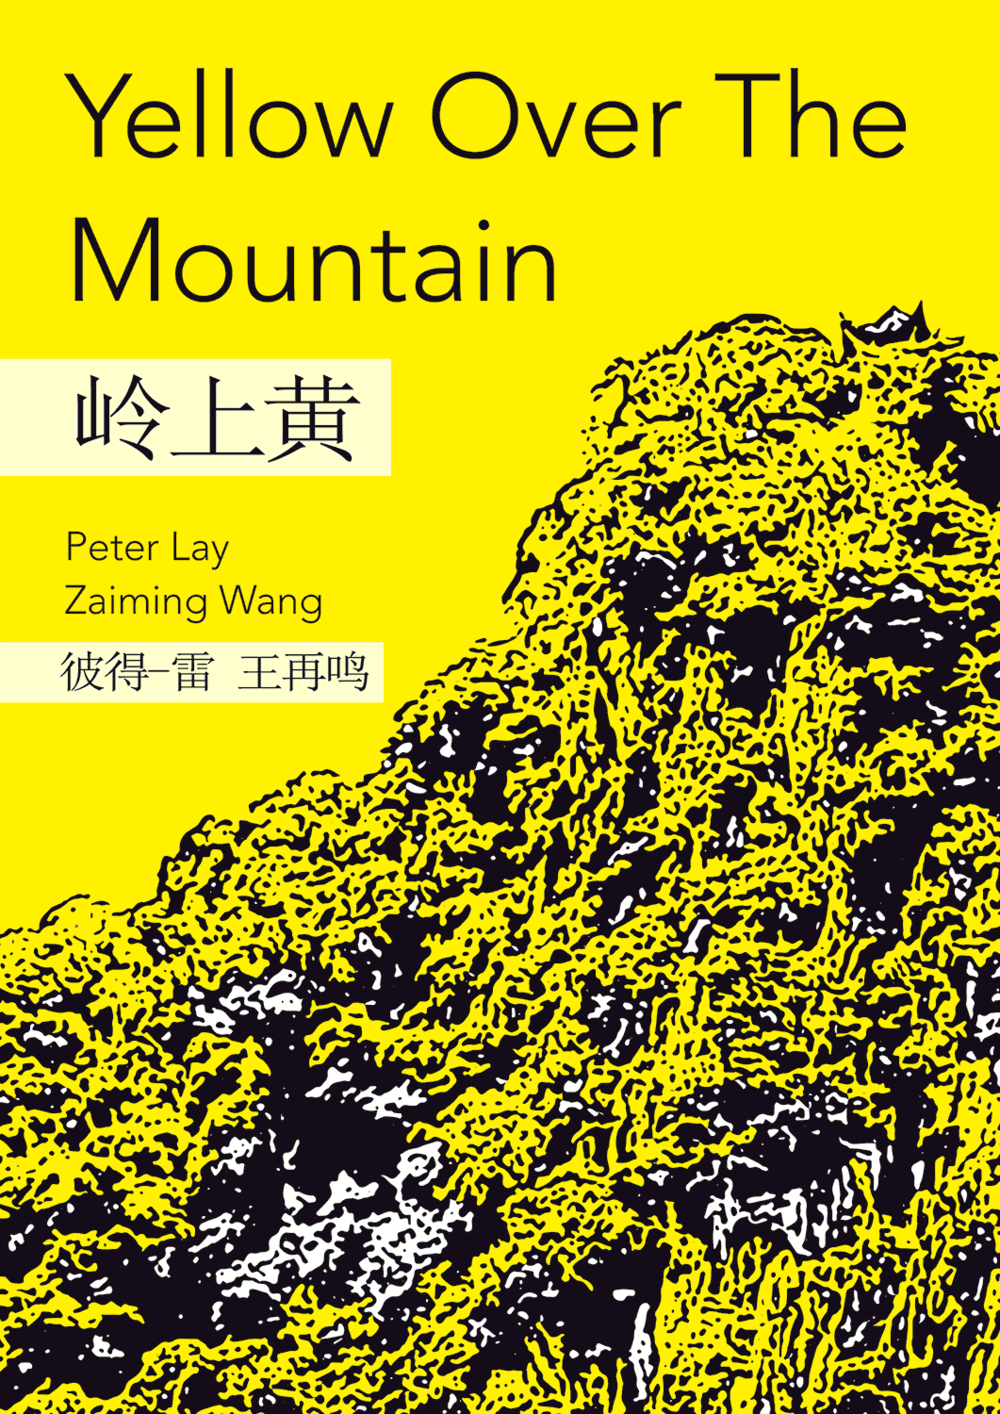 front cover artwork of Yellow Over The Mountain a book by Peter Lay and Zaiming Wang